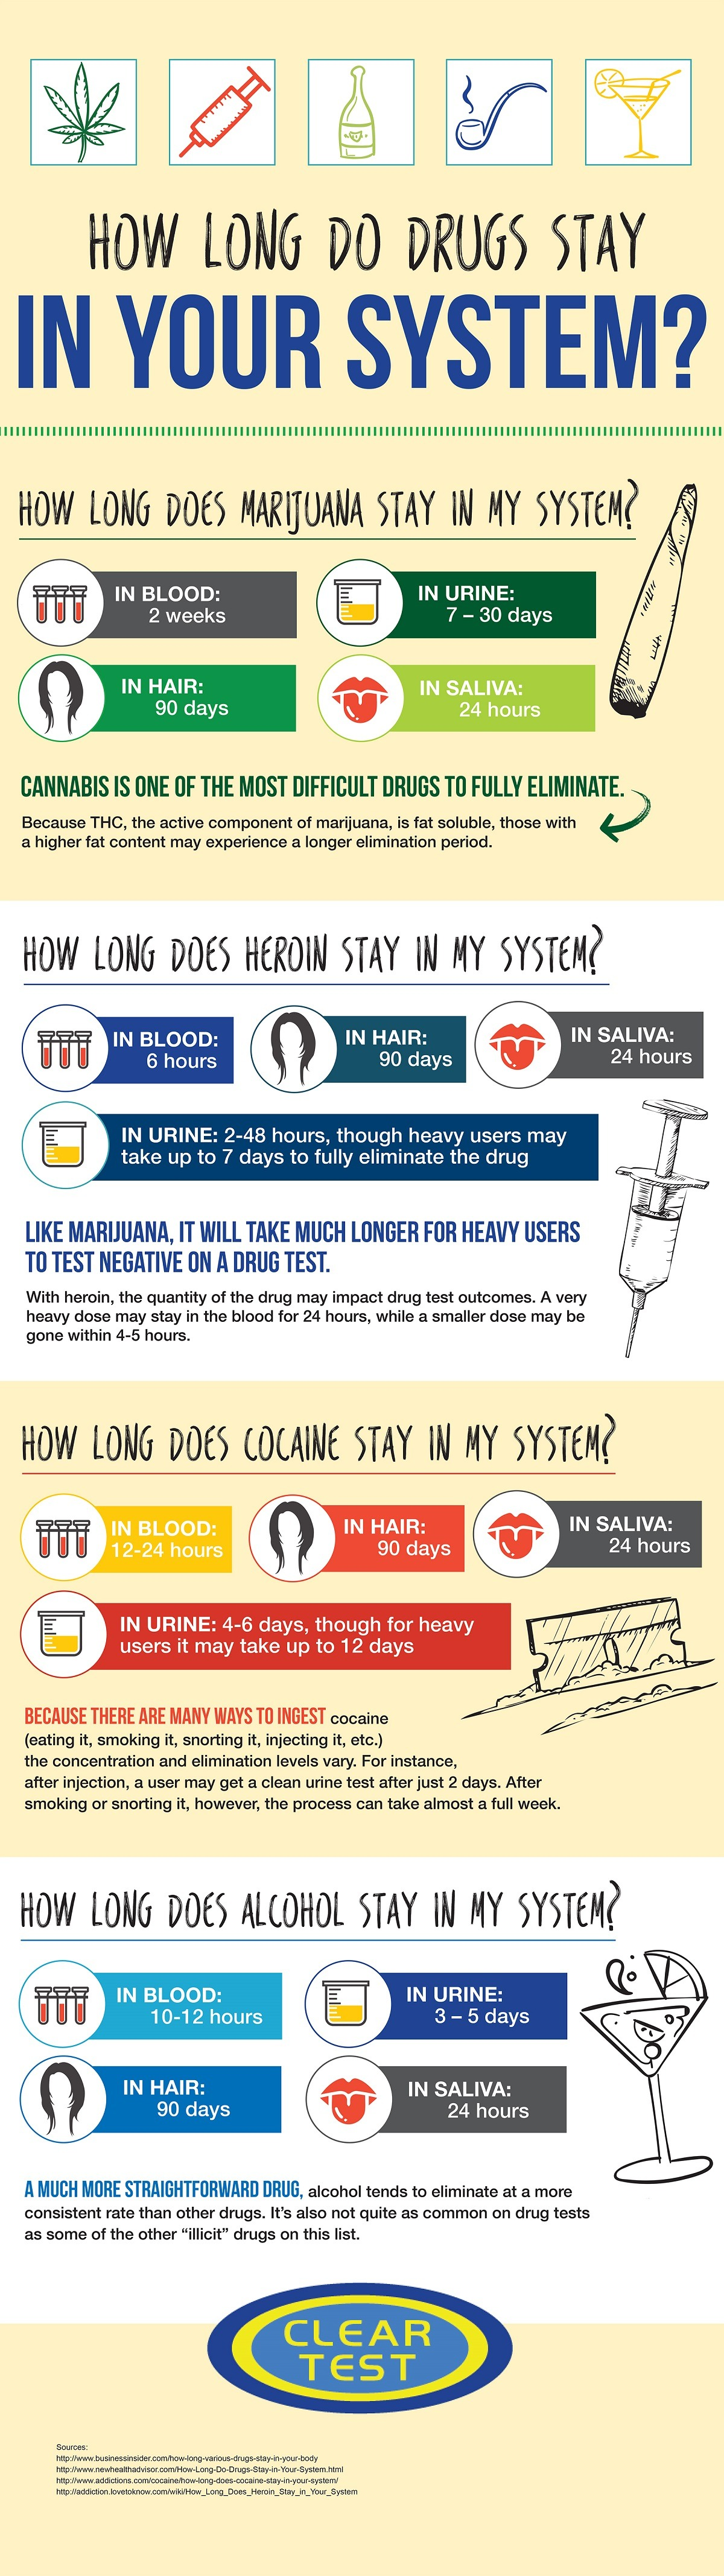 Infographic Describing How Long Various Drugs Stay In Your System